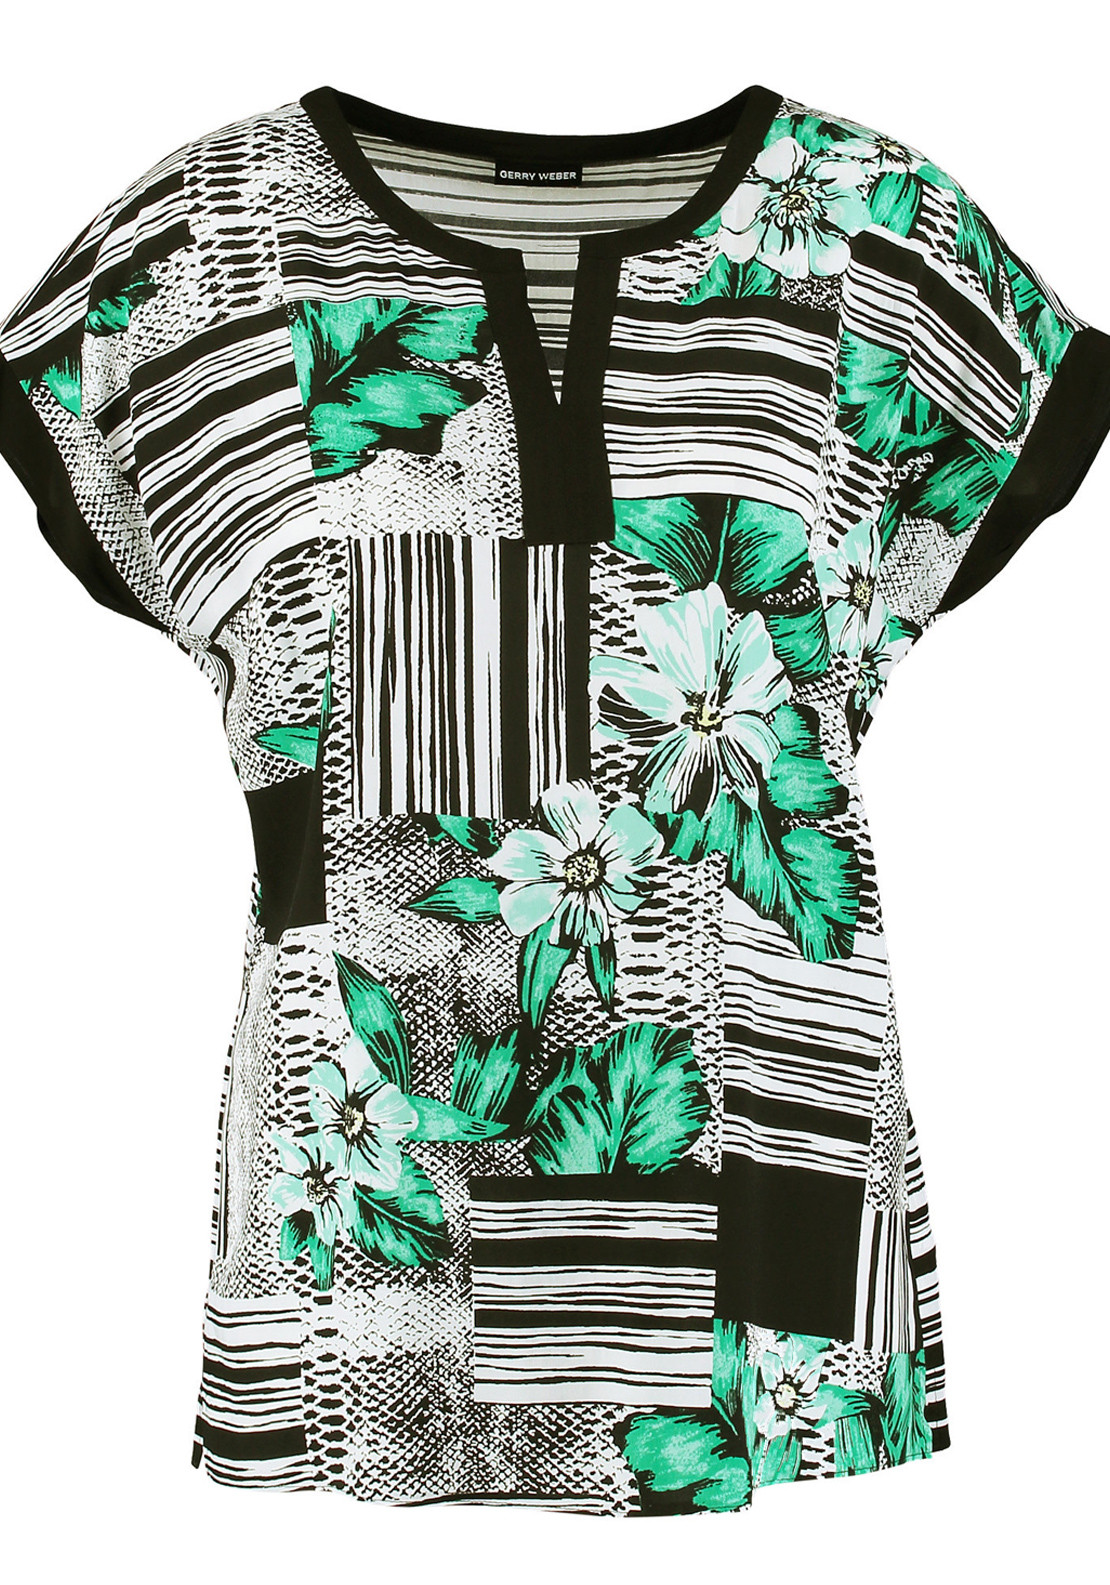 Gerry Weber Floral Print Cap Sleeve Blouse, Multi-Coloured